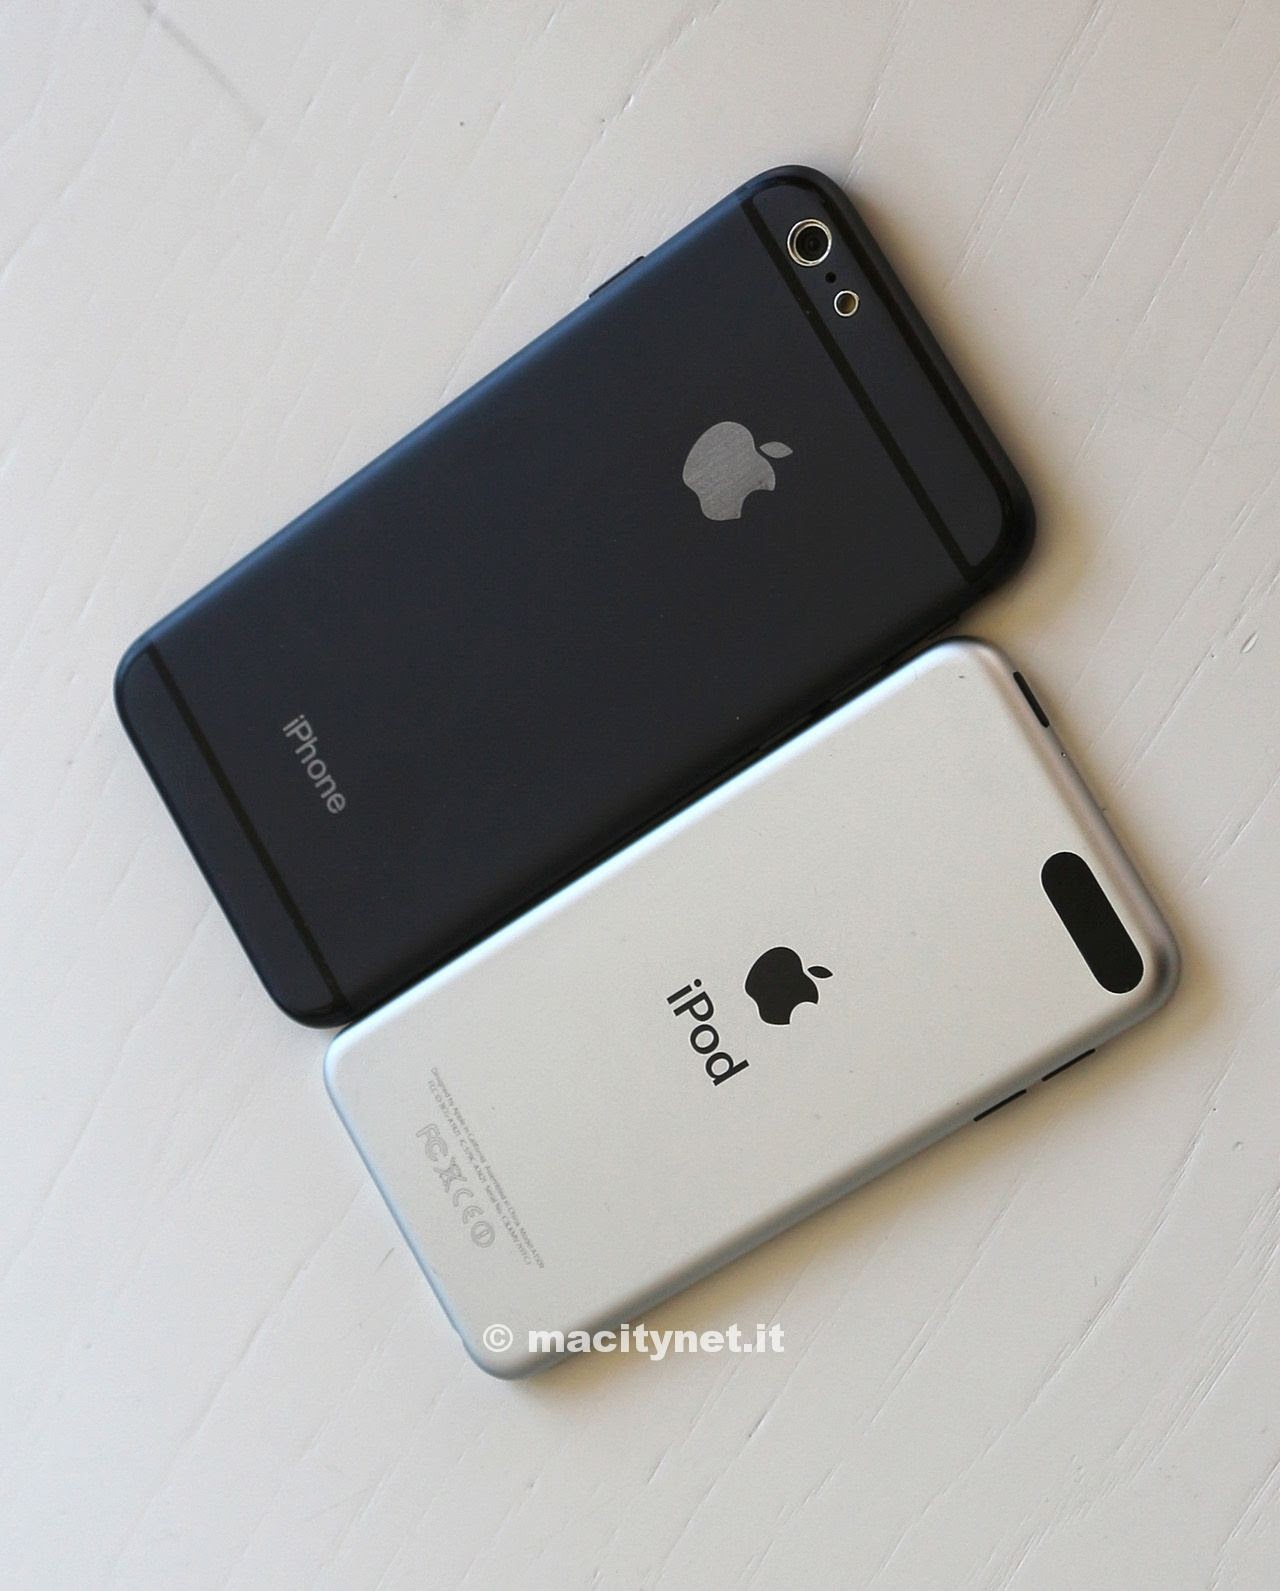 Comparison between the iPhone 6 and the iPod Touch 5G